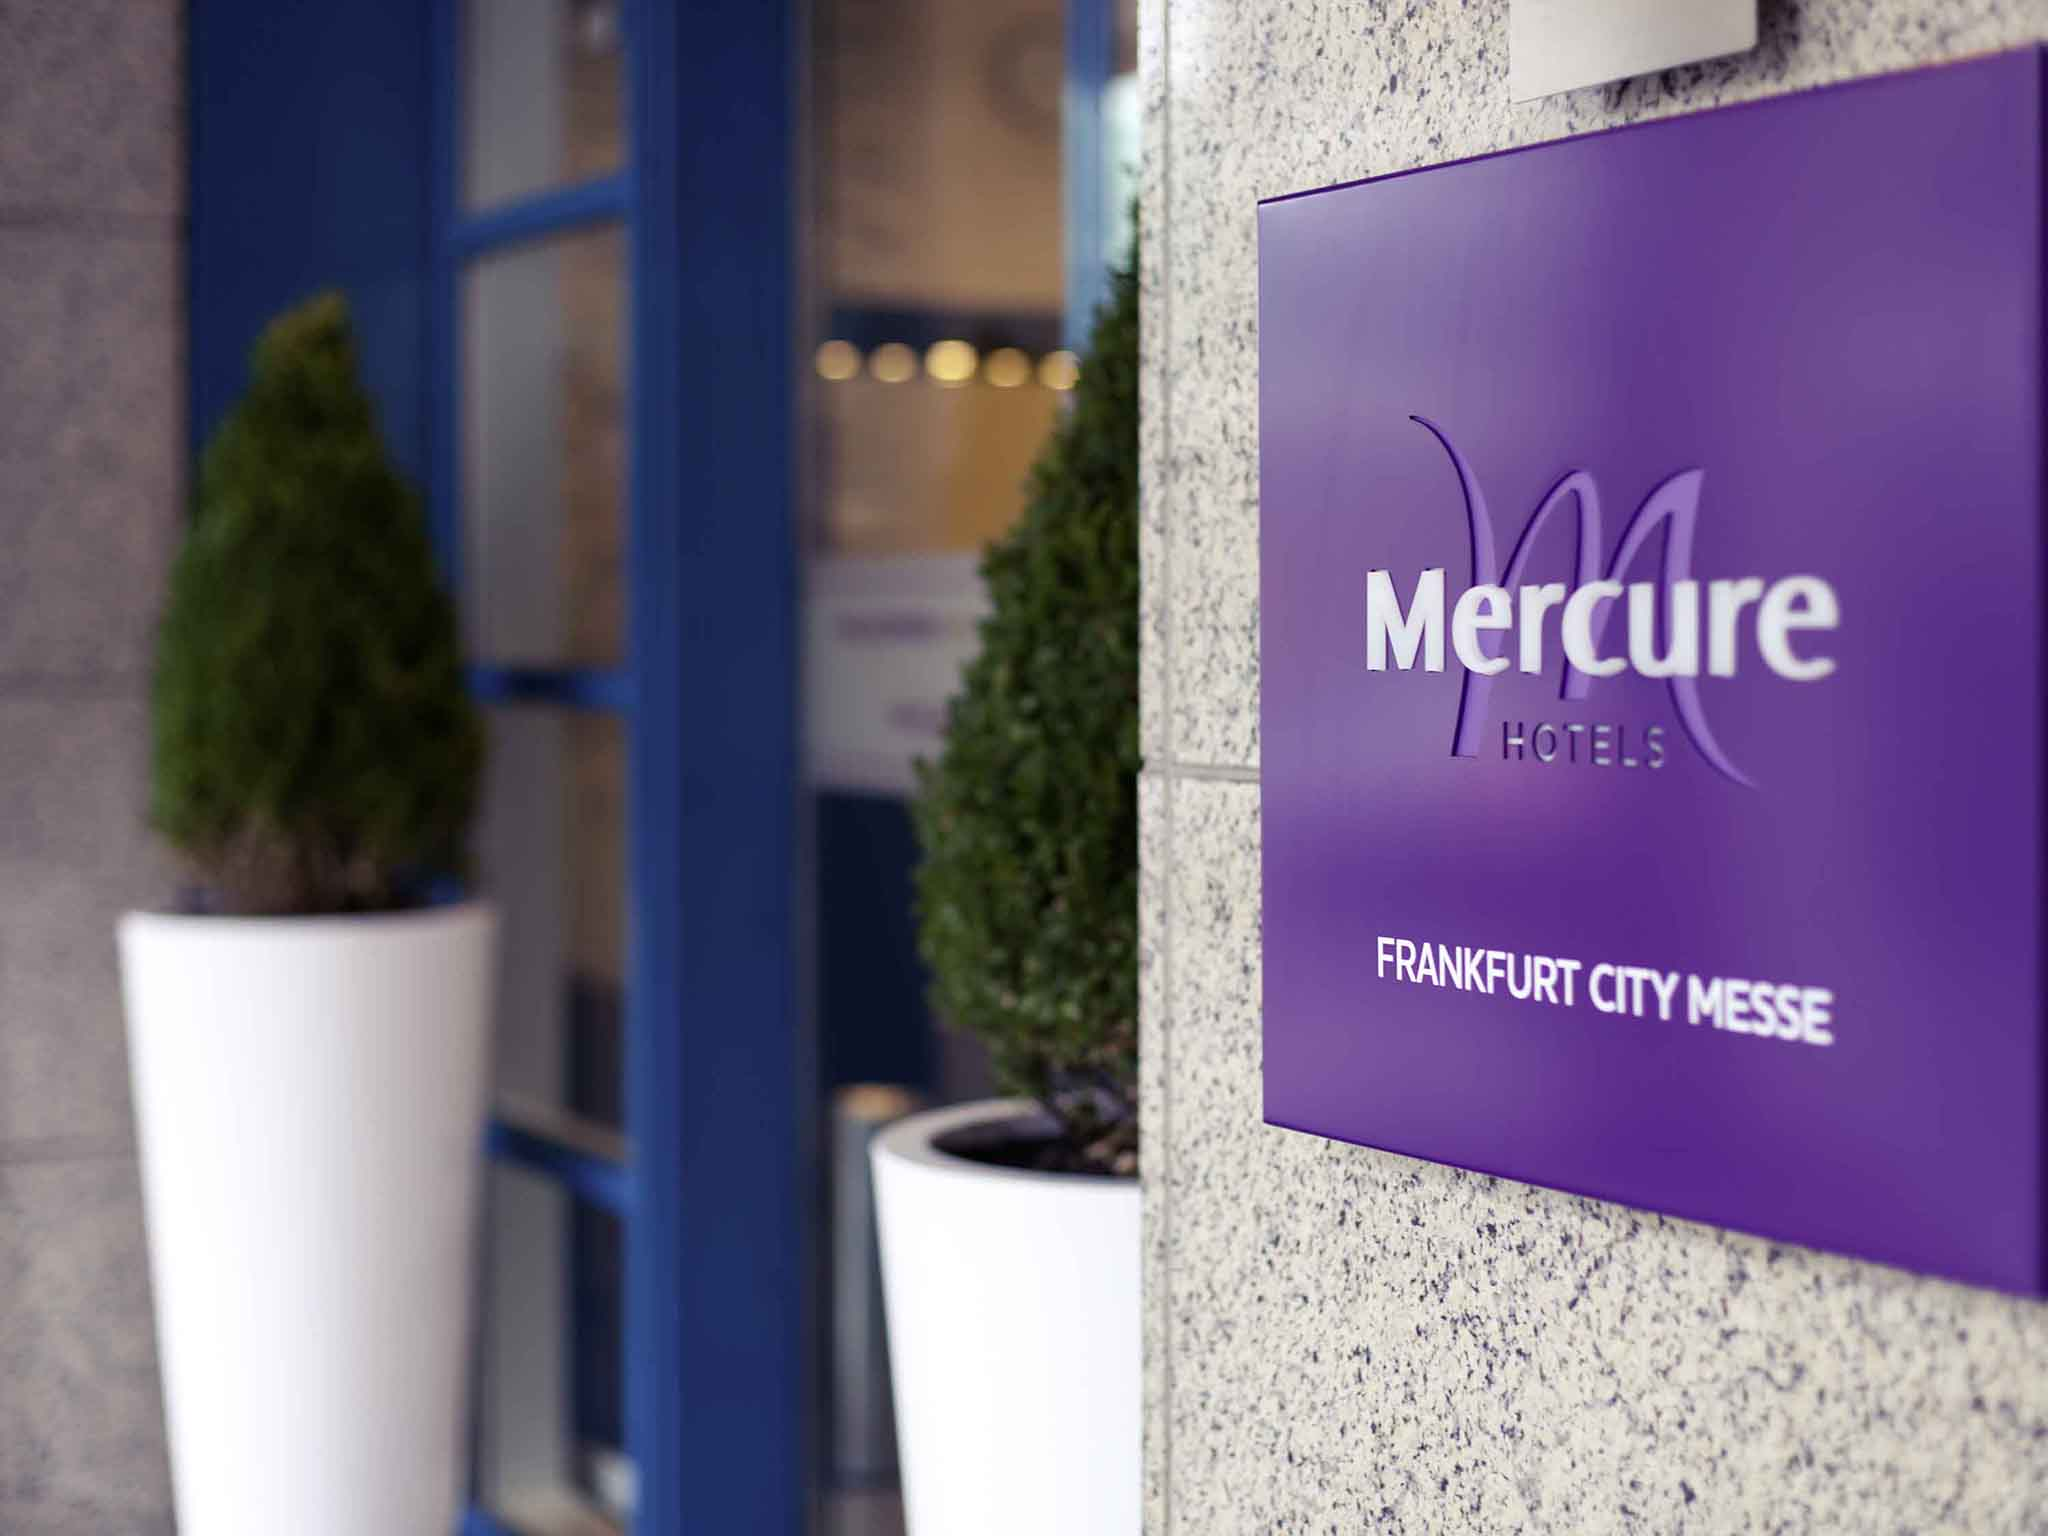 Hotel – Mercure Hotel Frankfurt City Messe